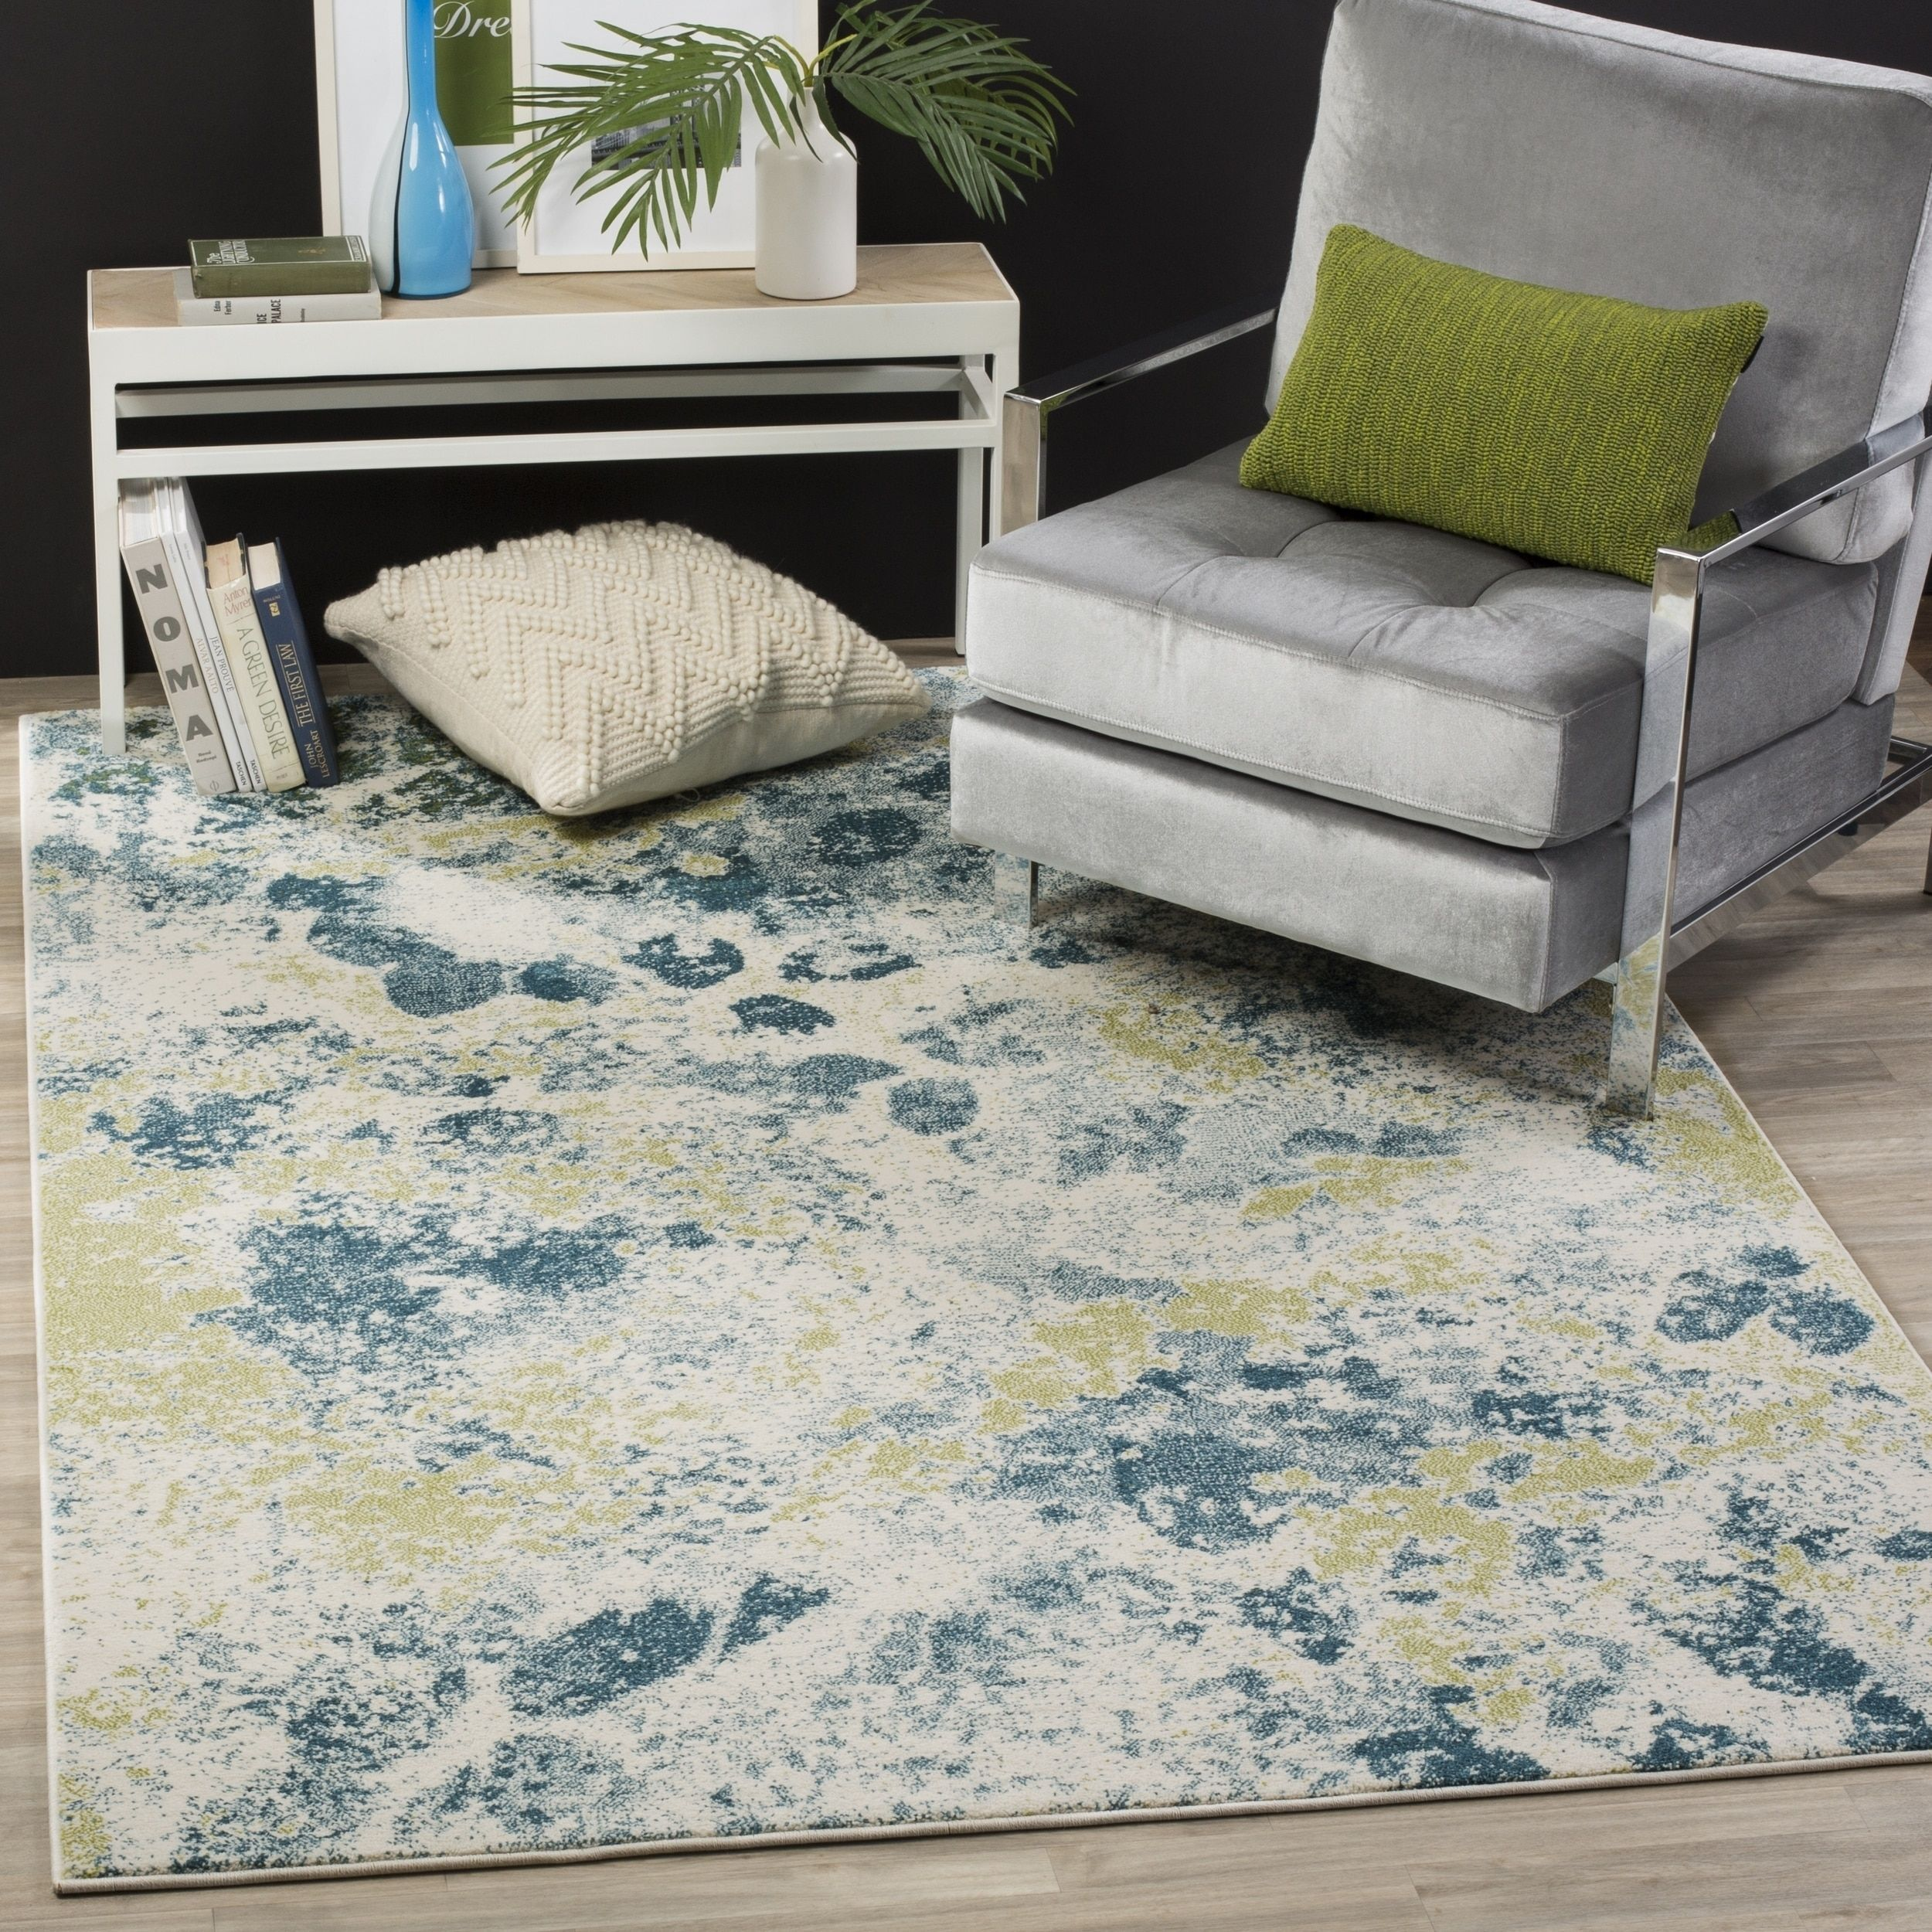 Safavieh Watercolor Contemporary Ivory/ Light Blue Rug (5' 3 x 7' 6 ) , Size 5' x 8' (Polypropylene, Abstract)